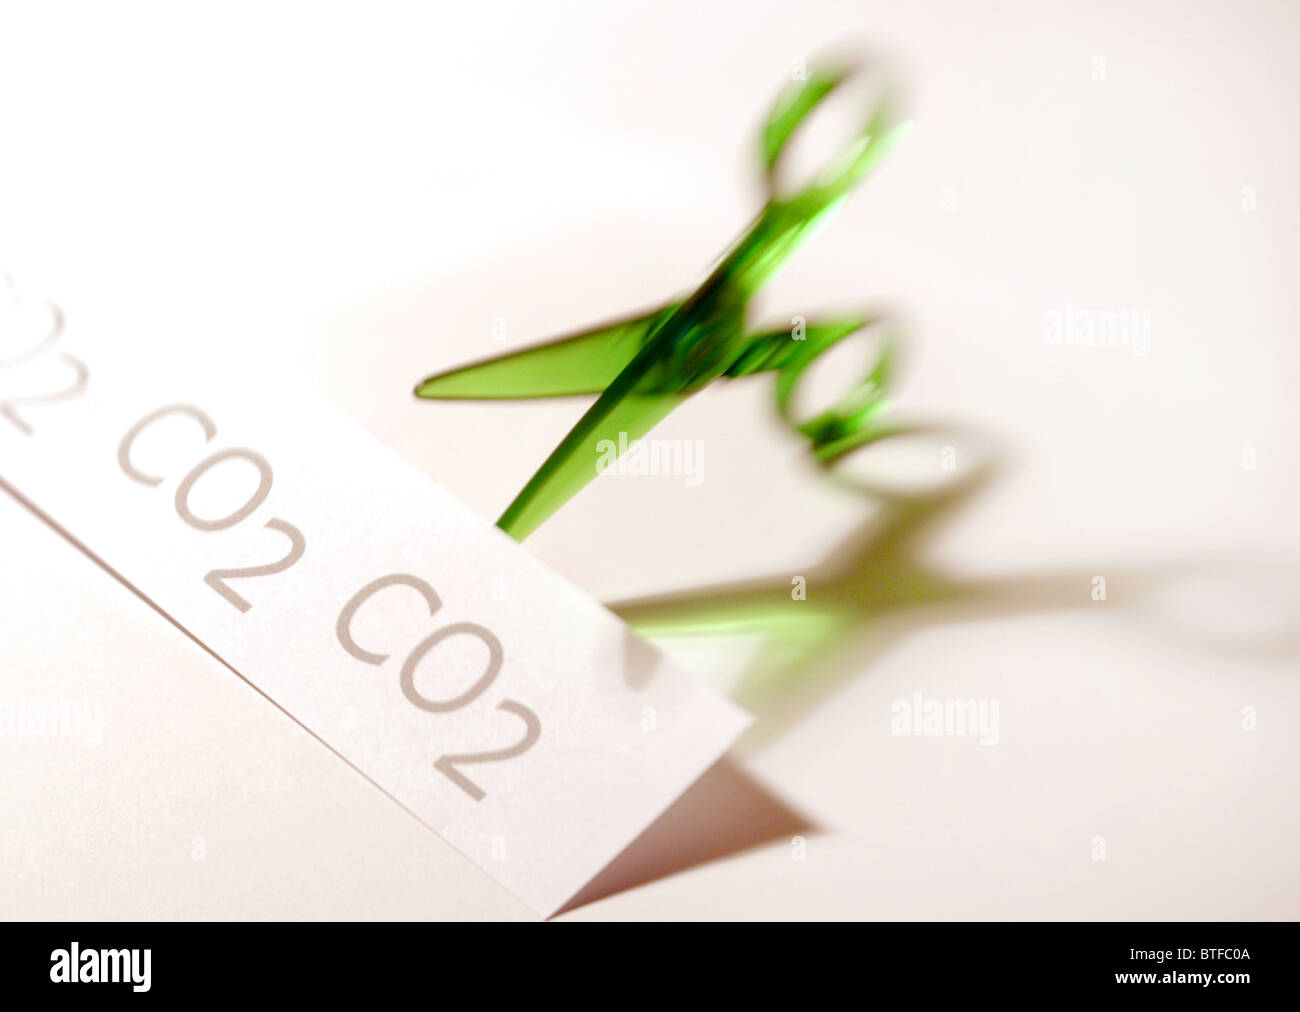 Carbon (CO2) reduction / cuts concept featuring green scissors cutting CO2 graphic. - Stock Image